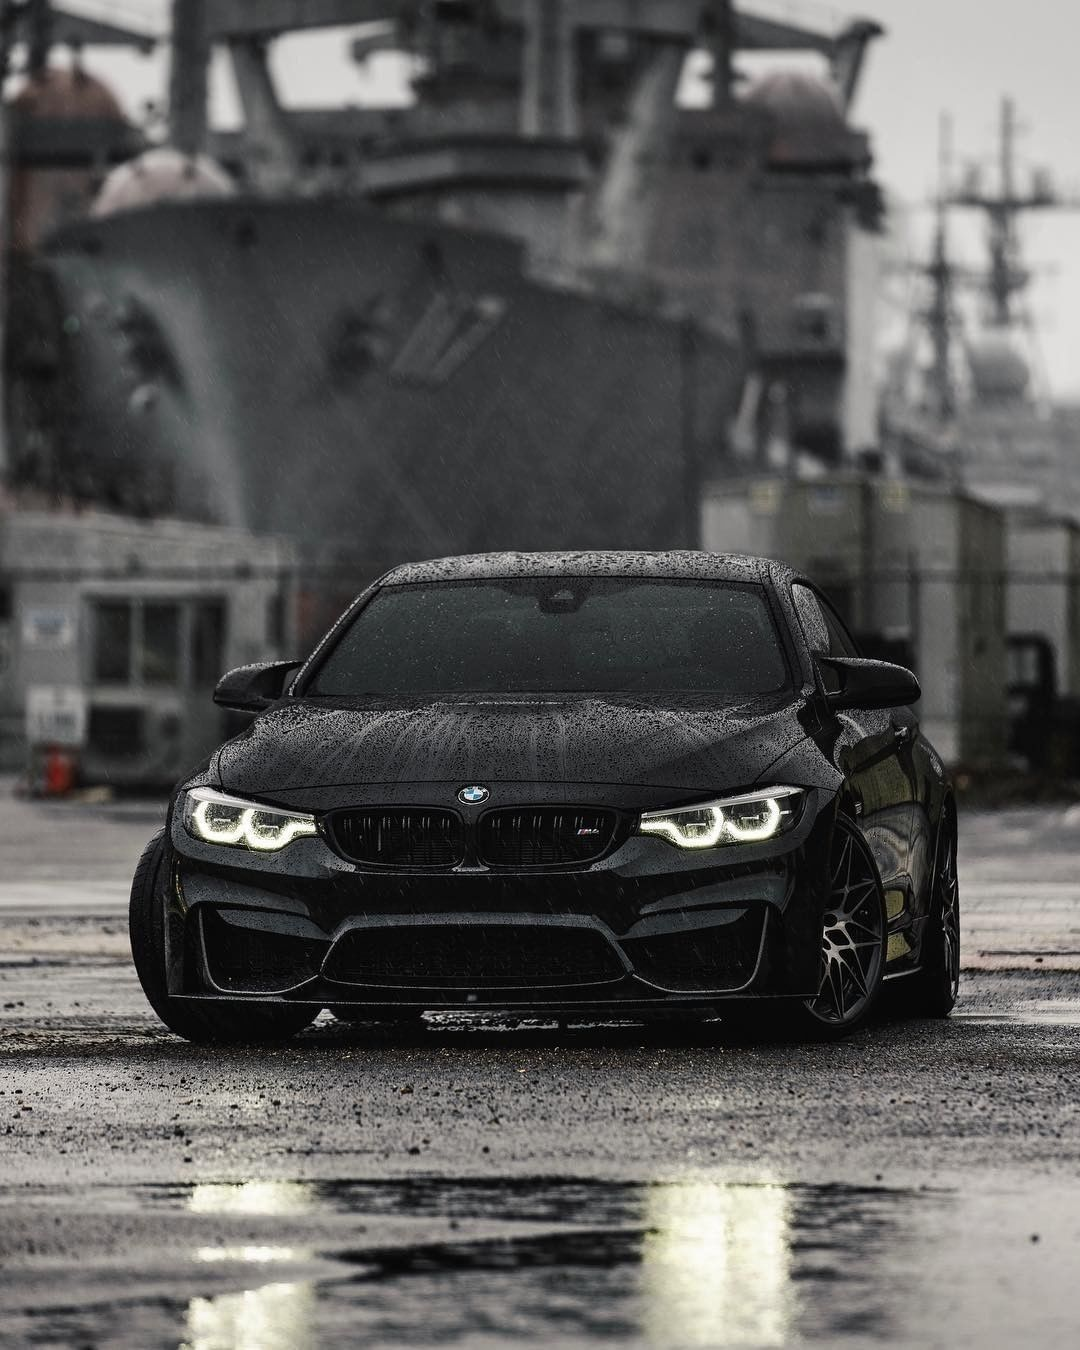 Download Bmw Wallpaper By Easygame 22 Free On Zedge Now Browse Millions Of Popular Black Wallpapers And Ringtones Bmw Wallpapers Bmw Iphone Wallpaper Bmw